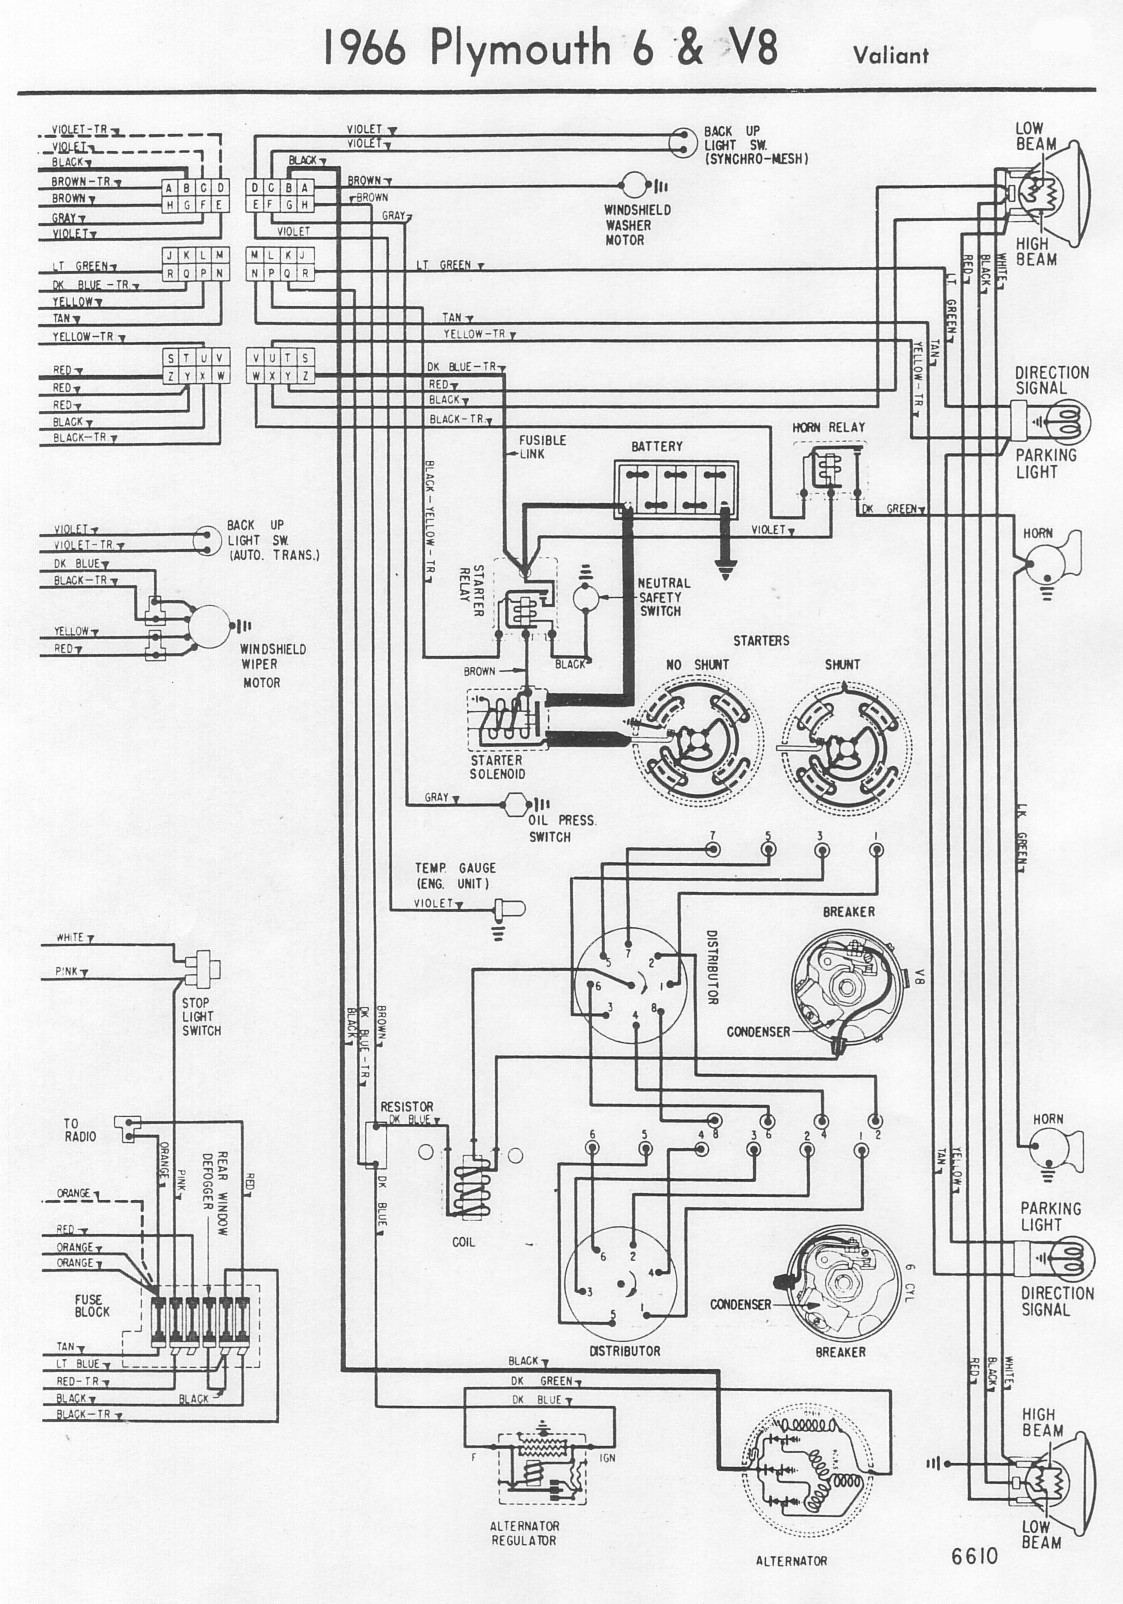 Free Electrical Wiring Diagrams 1970 Cuda Diagram Services Mustang 1967 Plymouth Barracuda For Light Rh Prestonfarmmotors Co Mopar Starter Relay